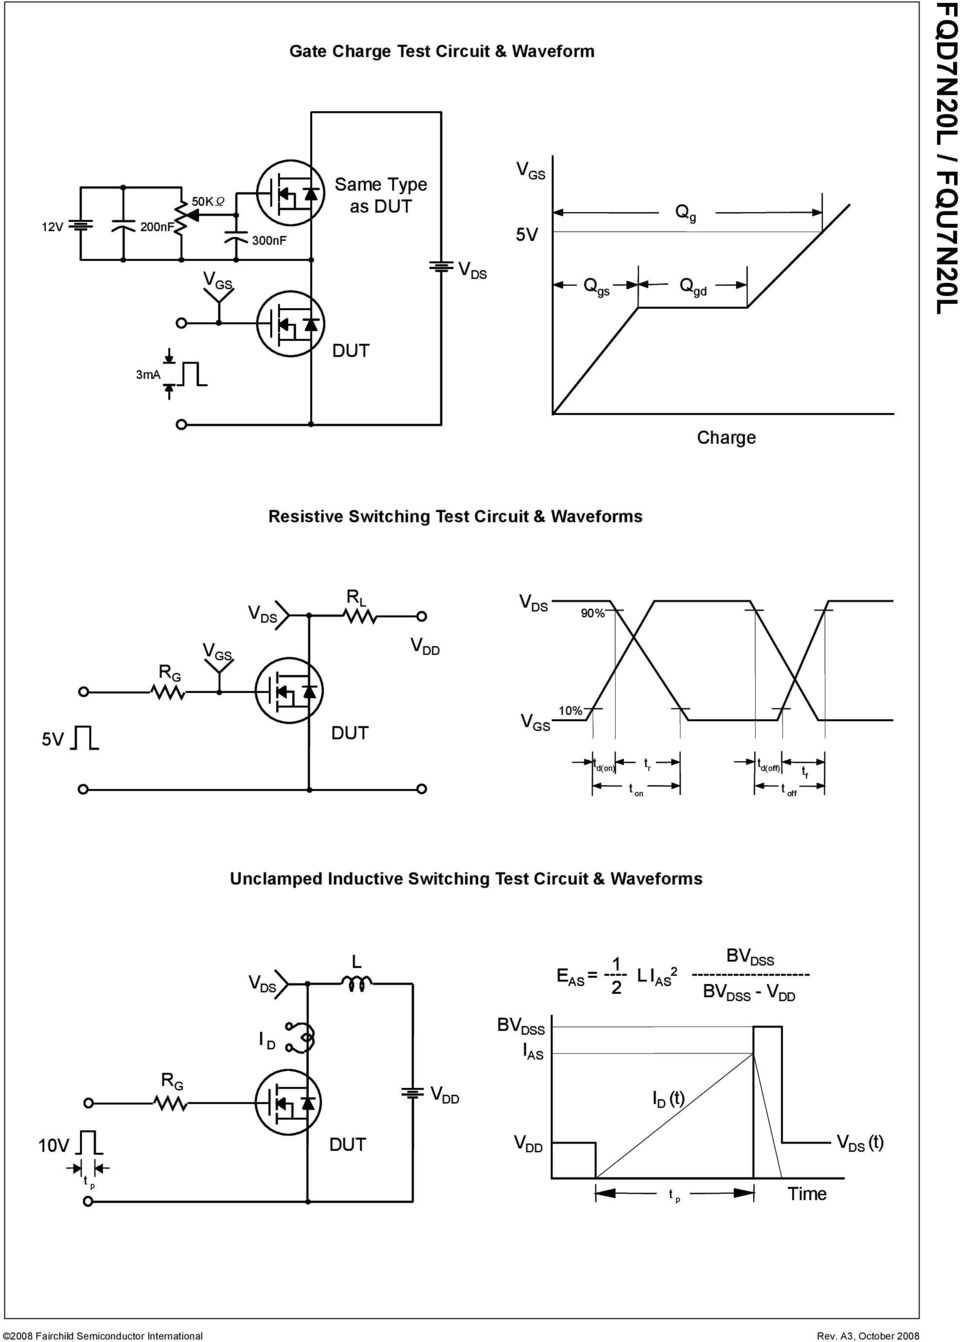 t r t d(off) tf t on t off Unclamped Inductive Switching Test Circuit & Waveforms L 1 E AS